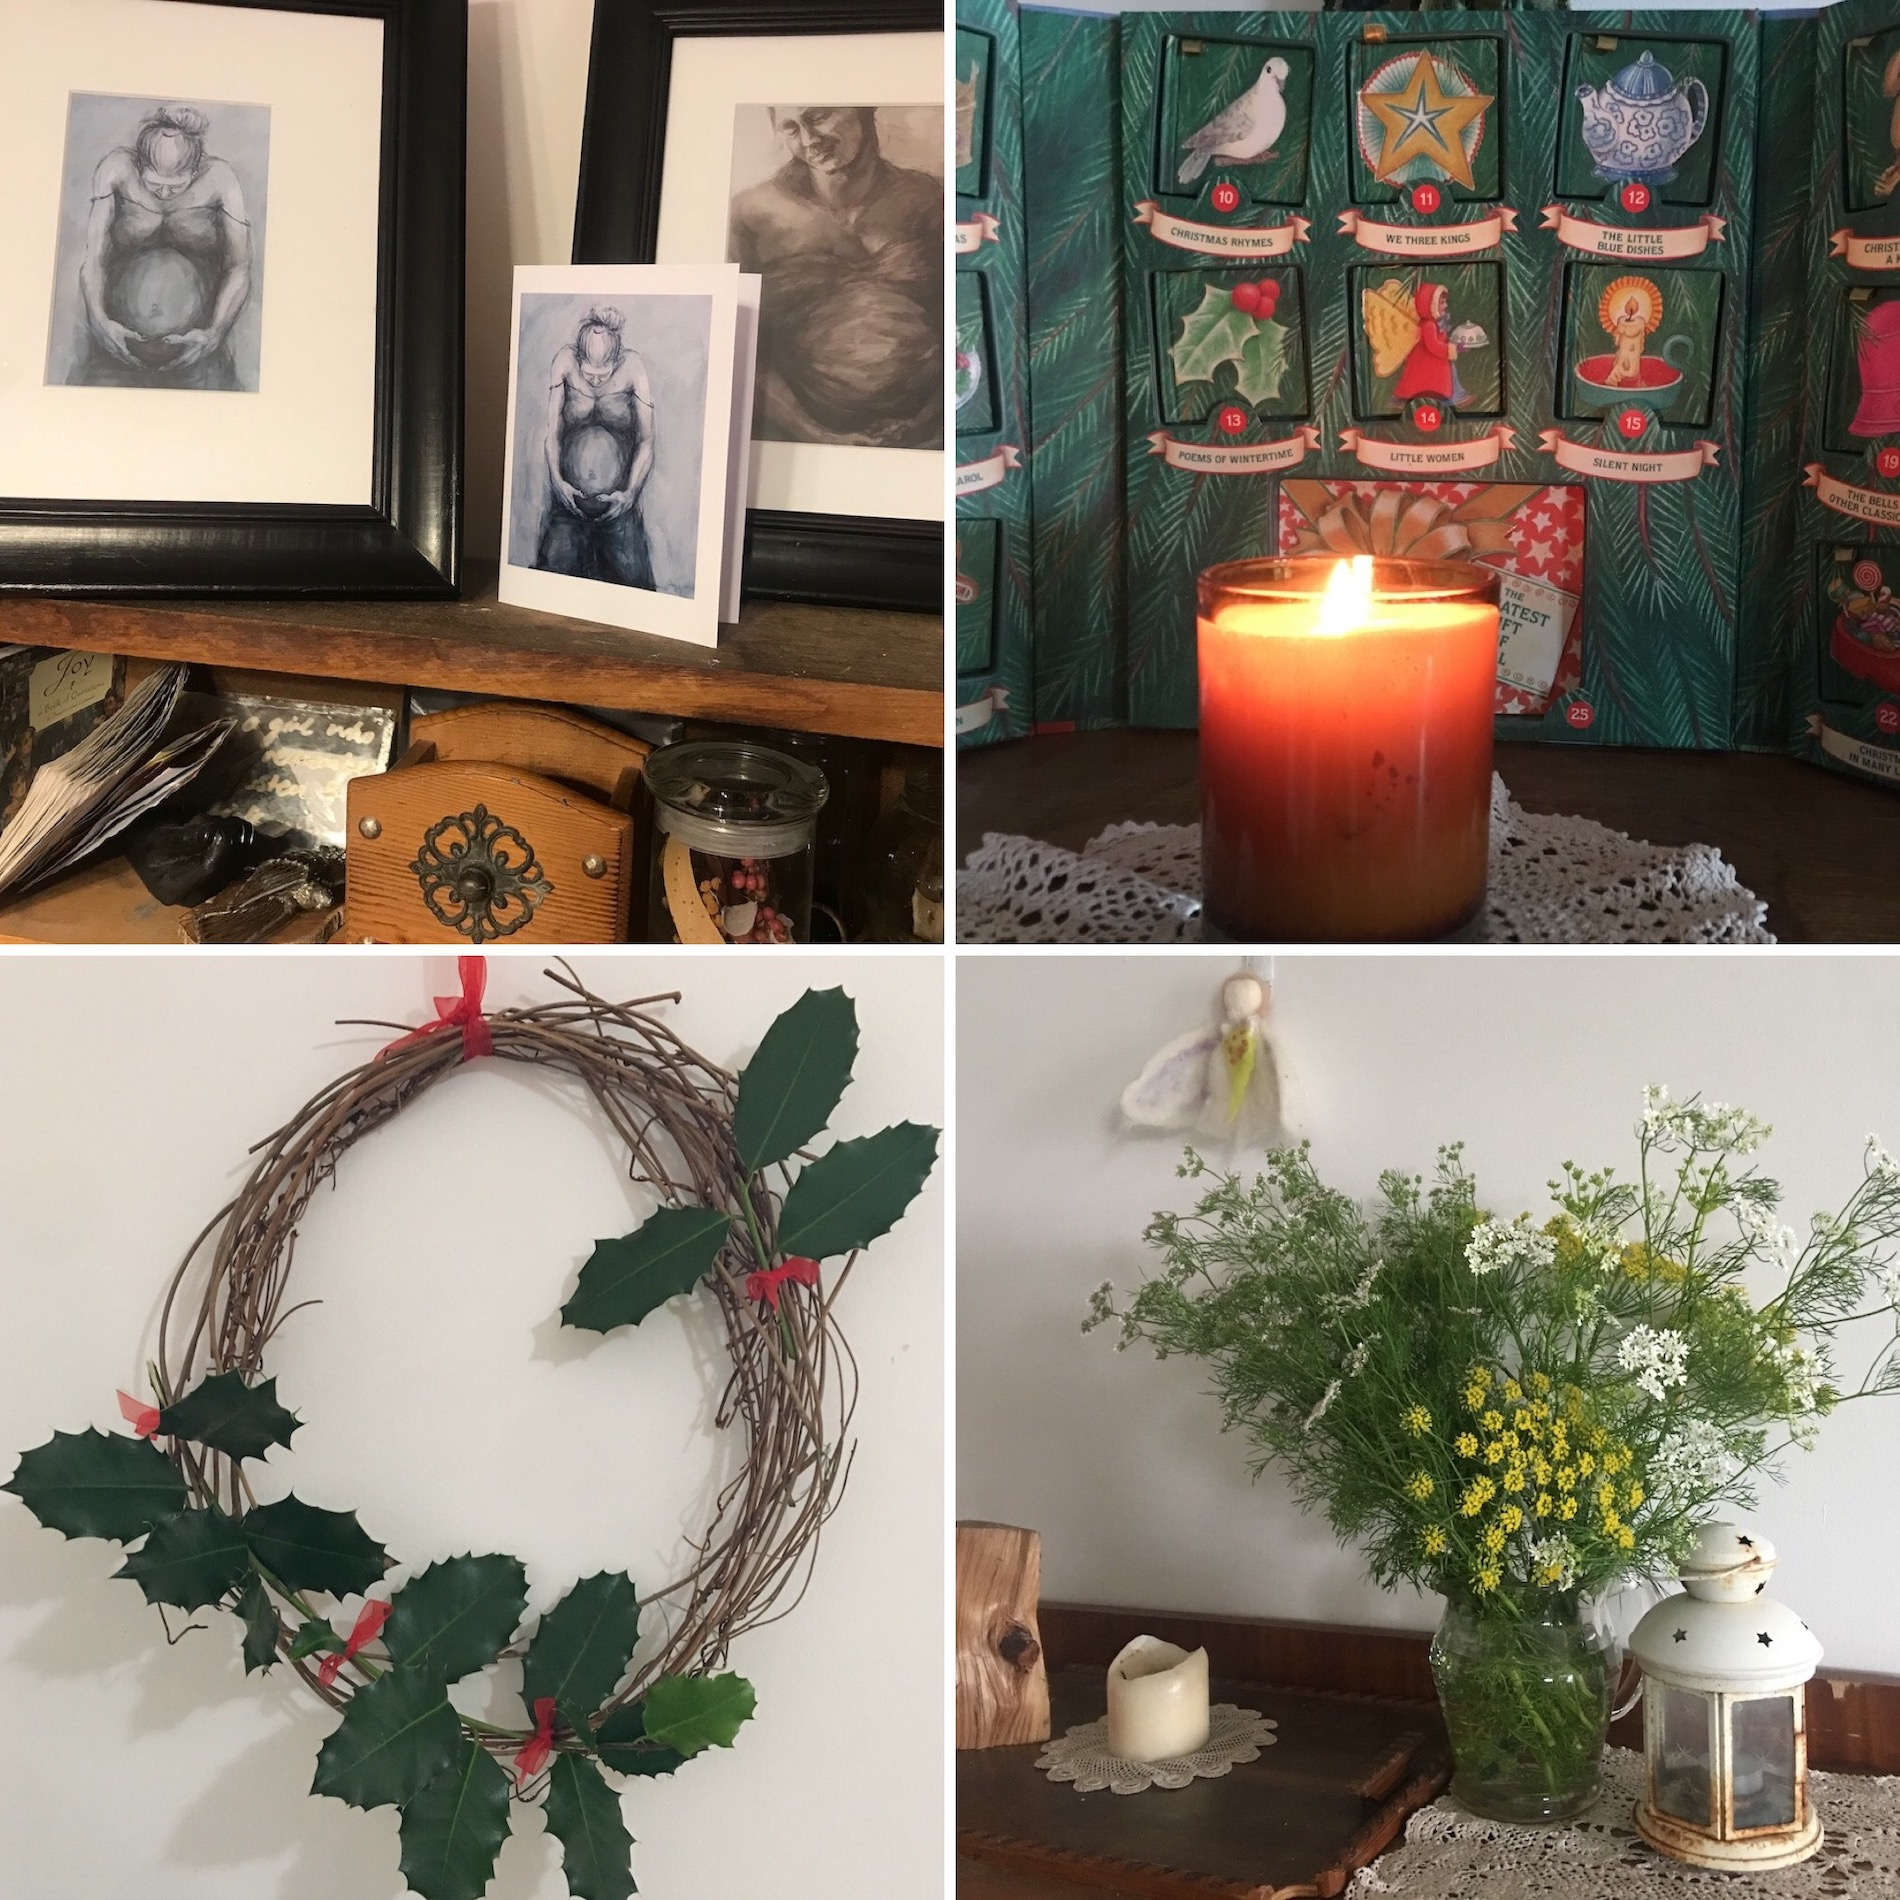 Collage of four examples of setting up decorations. From top left, selection of various objects in a small shelf including a jar of dried leaves and flowers. Framed drawings by Gabby Willmott of a pregnant woman sit on top of the shelf. Top right, a lit candle in a glass sitting on top of a doily in front of an advent calendar. Bottom right, a small fabric angel decoration hangs on the wall above a cabinet that has flowers, candles and a piece of wood displayed on top. Bottom left, a wreath made of dried twigs shaped in a circle holding some holly leaves and small red bows.